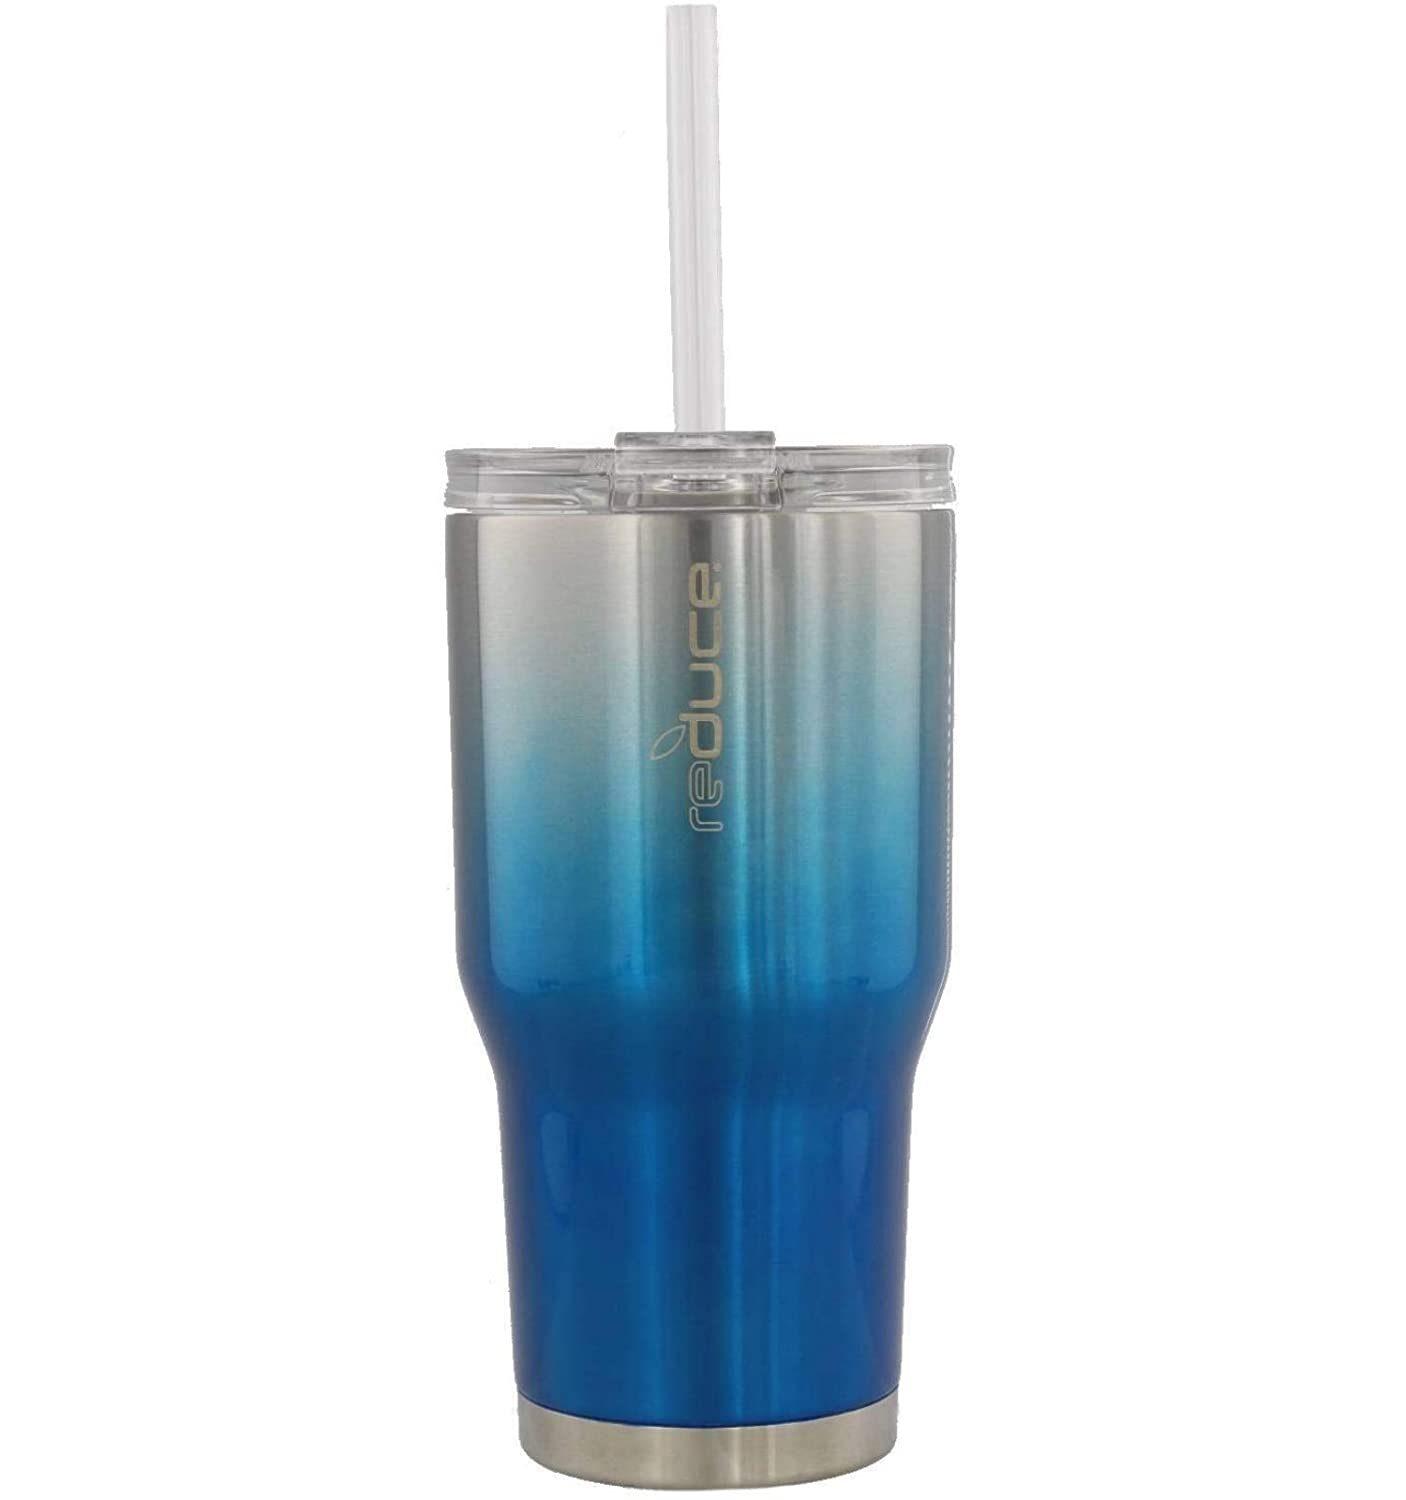 30oz Stainless Steel Tumbler With Straw /& Lid Ideal for Water /& Tea REDUCE COLD-1 Tumbler Reduce Insulated Tumbler Keeps Drinks Hot /& Cold A Perfect Coffee Travel Mug For the Office 2 Pack Set